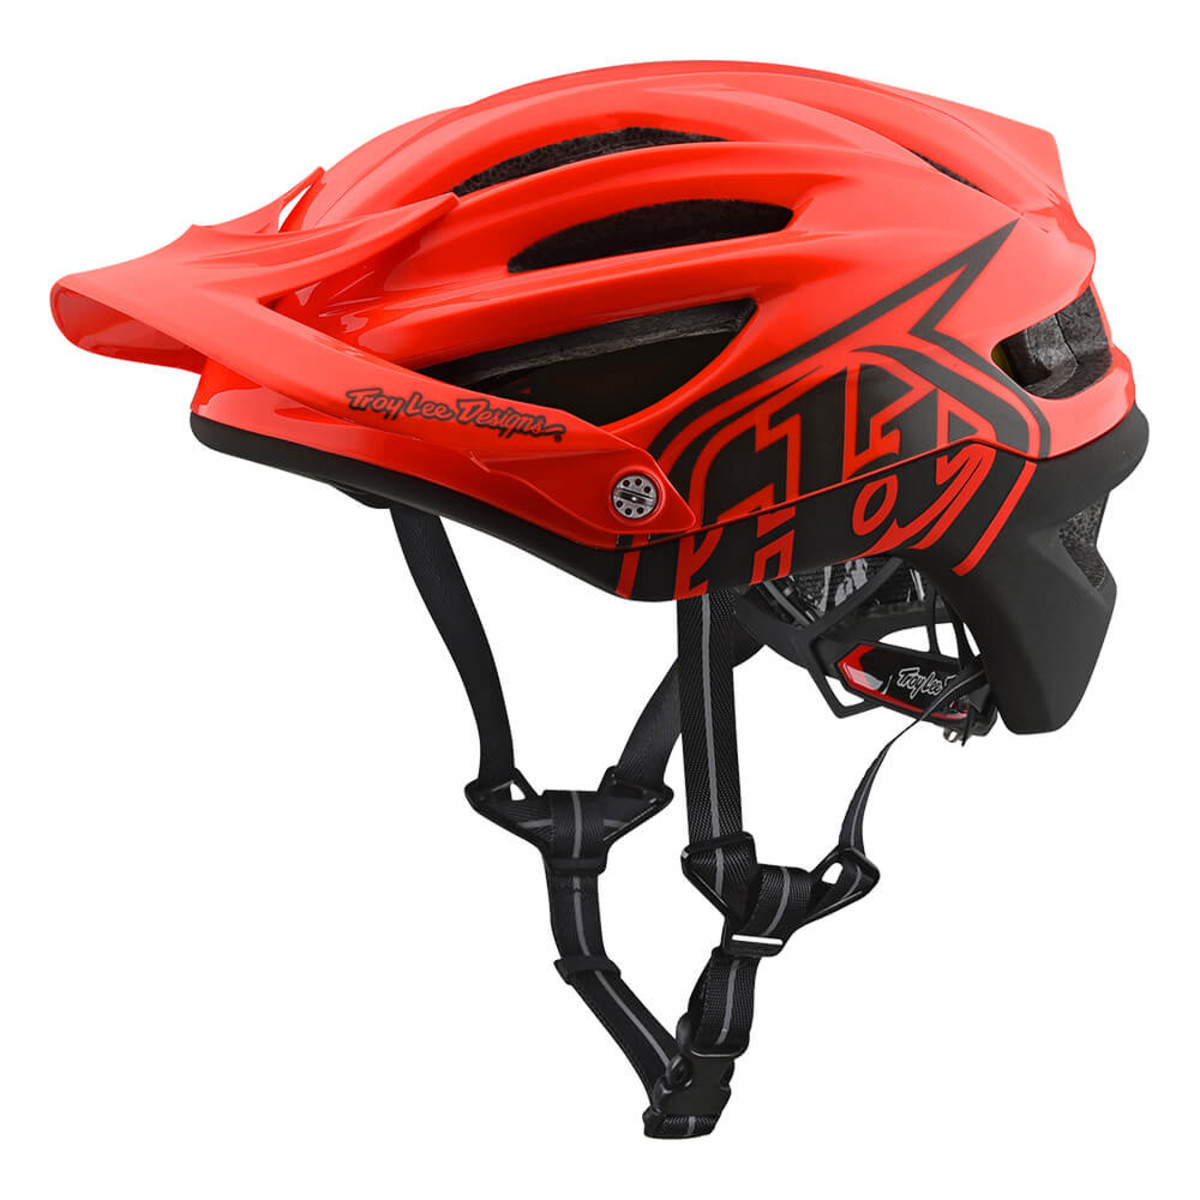 Troy Lee A2 DECOY HELMET MIPS  The trailblazing A2 is Troy Lee Designs' MTB trail helmet that checks all the boxes. Its stylish shell not only incorporates huge intake and exhaust ventilation ports, it also comes with the very best in impact protection. From breakaway visor screws, the innovative MIPS® system and an industry first dual density EPP + EPS liner that protects against both high and low speed impacts; this is a helmet that doesn't take your safety lightly. Add in a revised adjustable strap and X-Static® Pure Silver comfort liner for 2018 and the comfort is every bit on par with the protection.